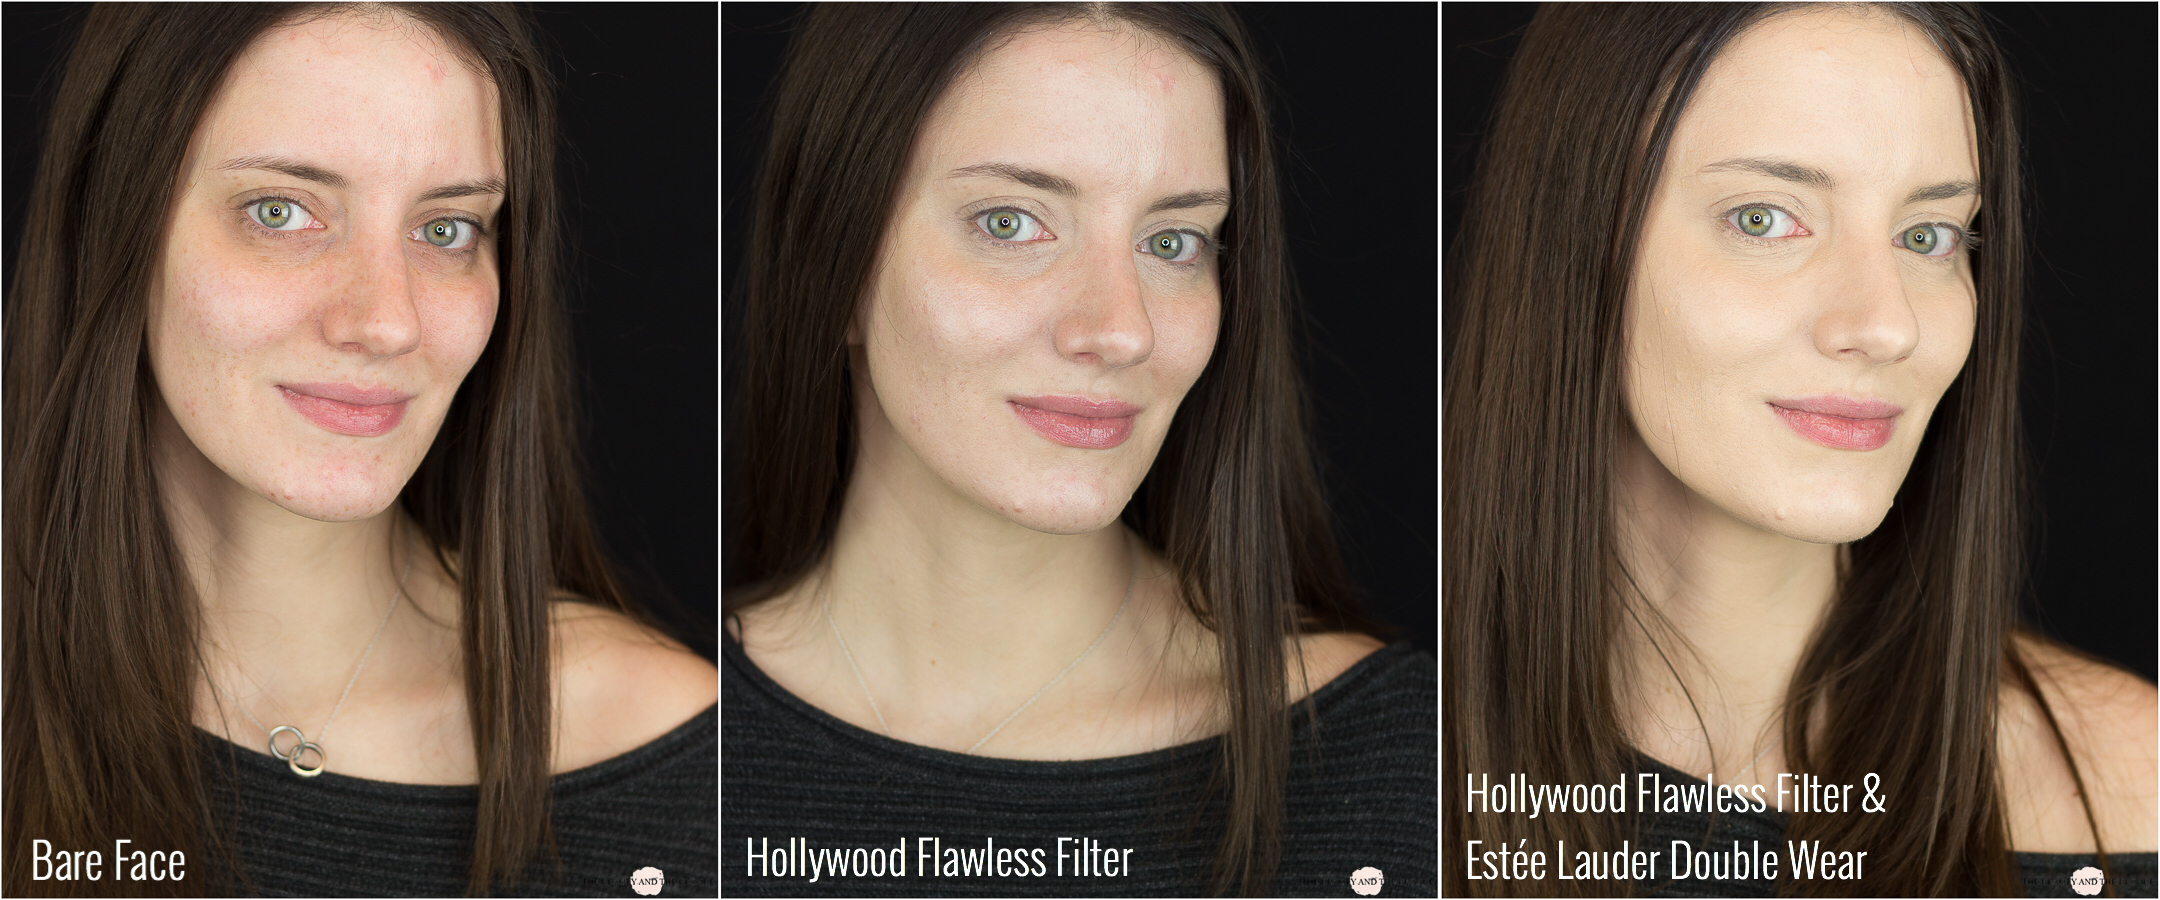 Charlotte Tilbury Hollywood Flawless Filter Review Erfahrung Swatches Auftrag